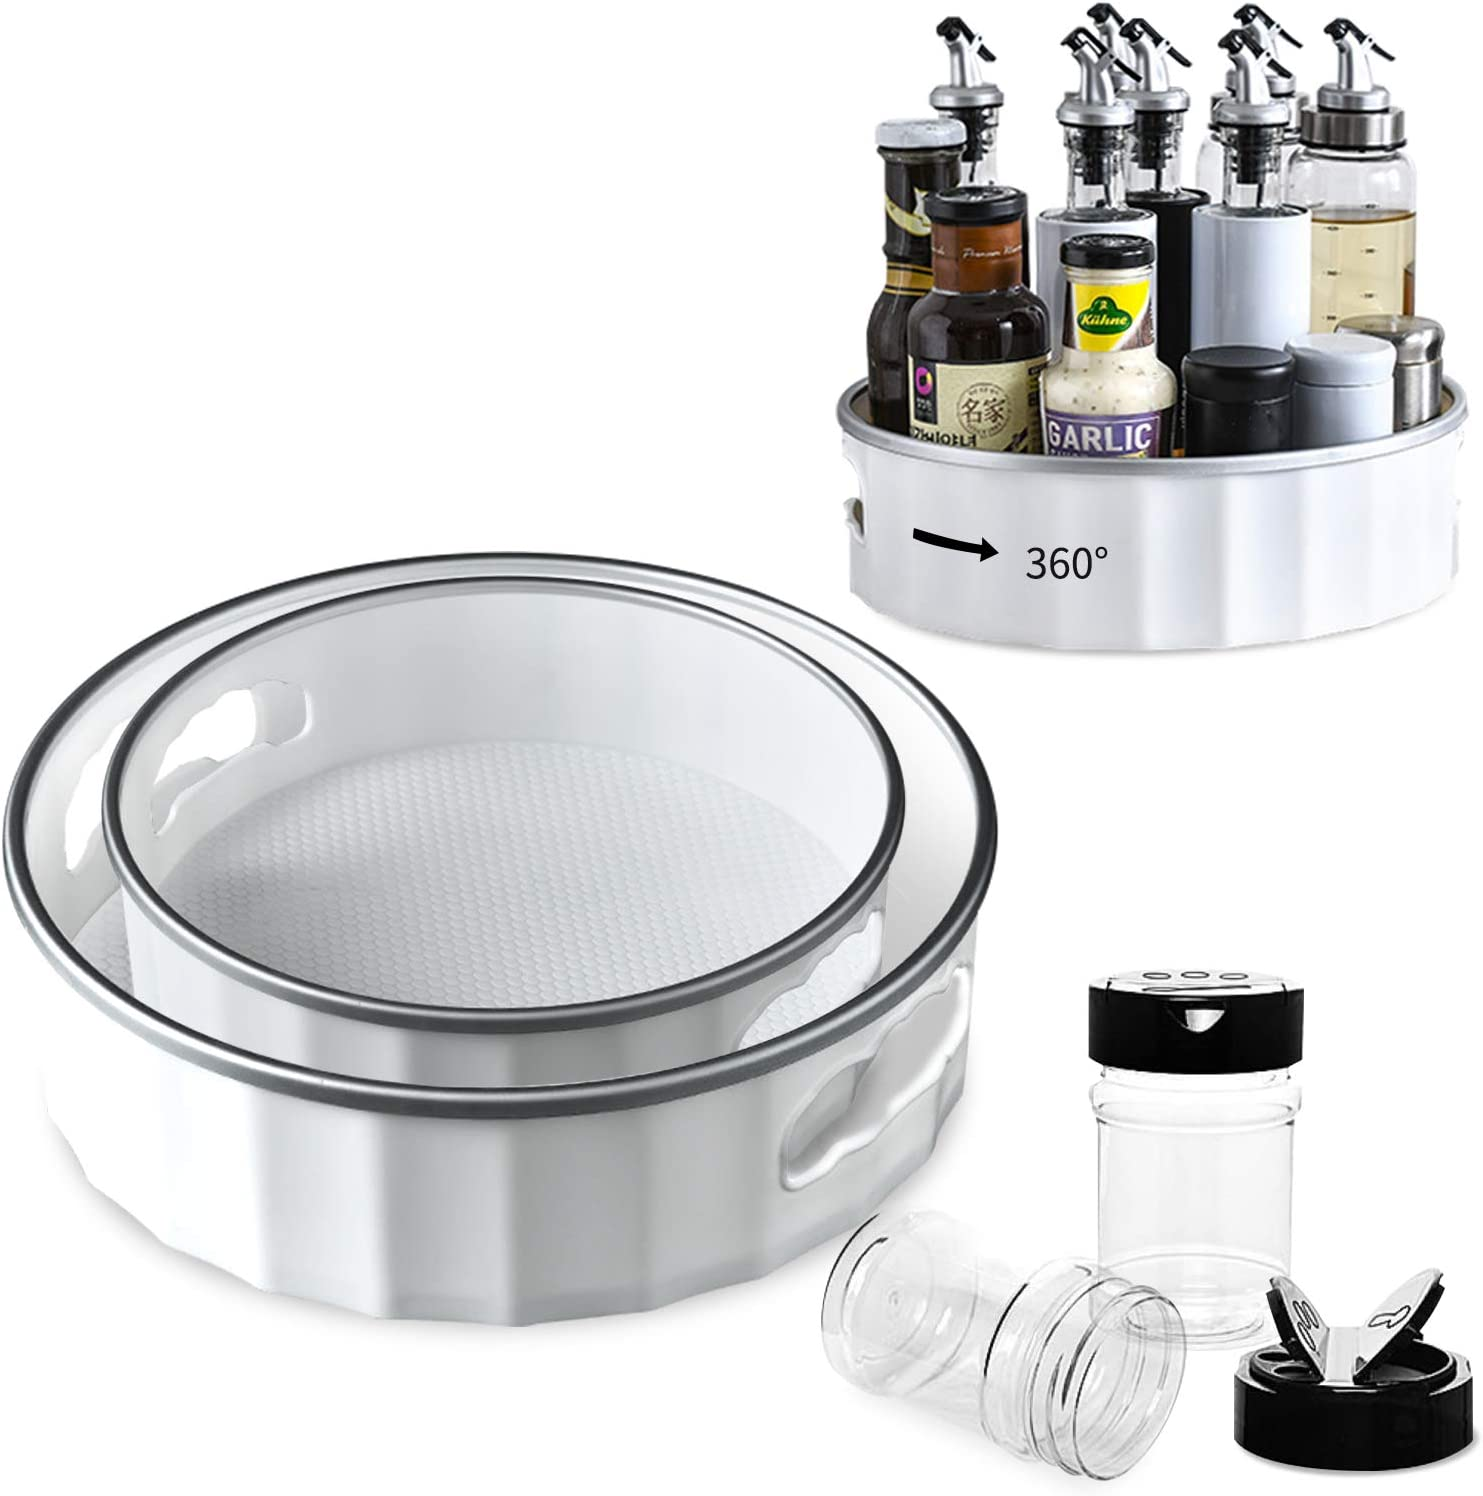 2 Pack 12 Inch Lazy Susan Turntable 9 Inch Cabinet Organizer for Kitchen 360 Rotating Food Storage Container Fridge Pantry Includes 2 Pack Black Cap Plastic 9 Oz Spice Jar Bottles (Silver Gray)